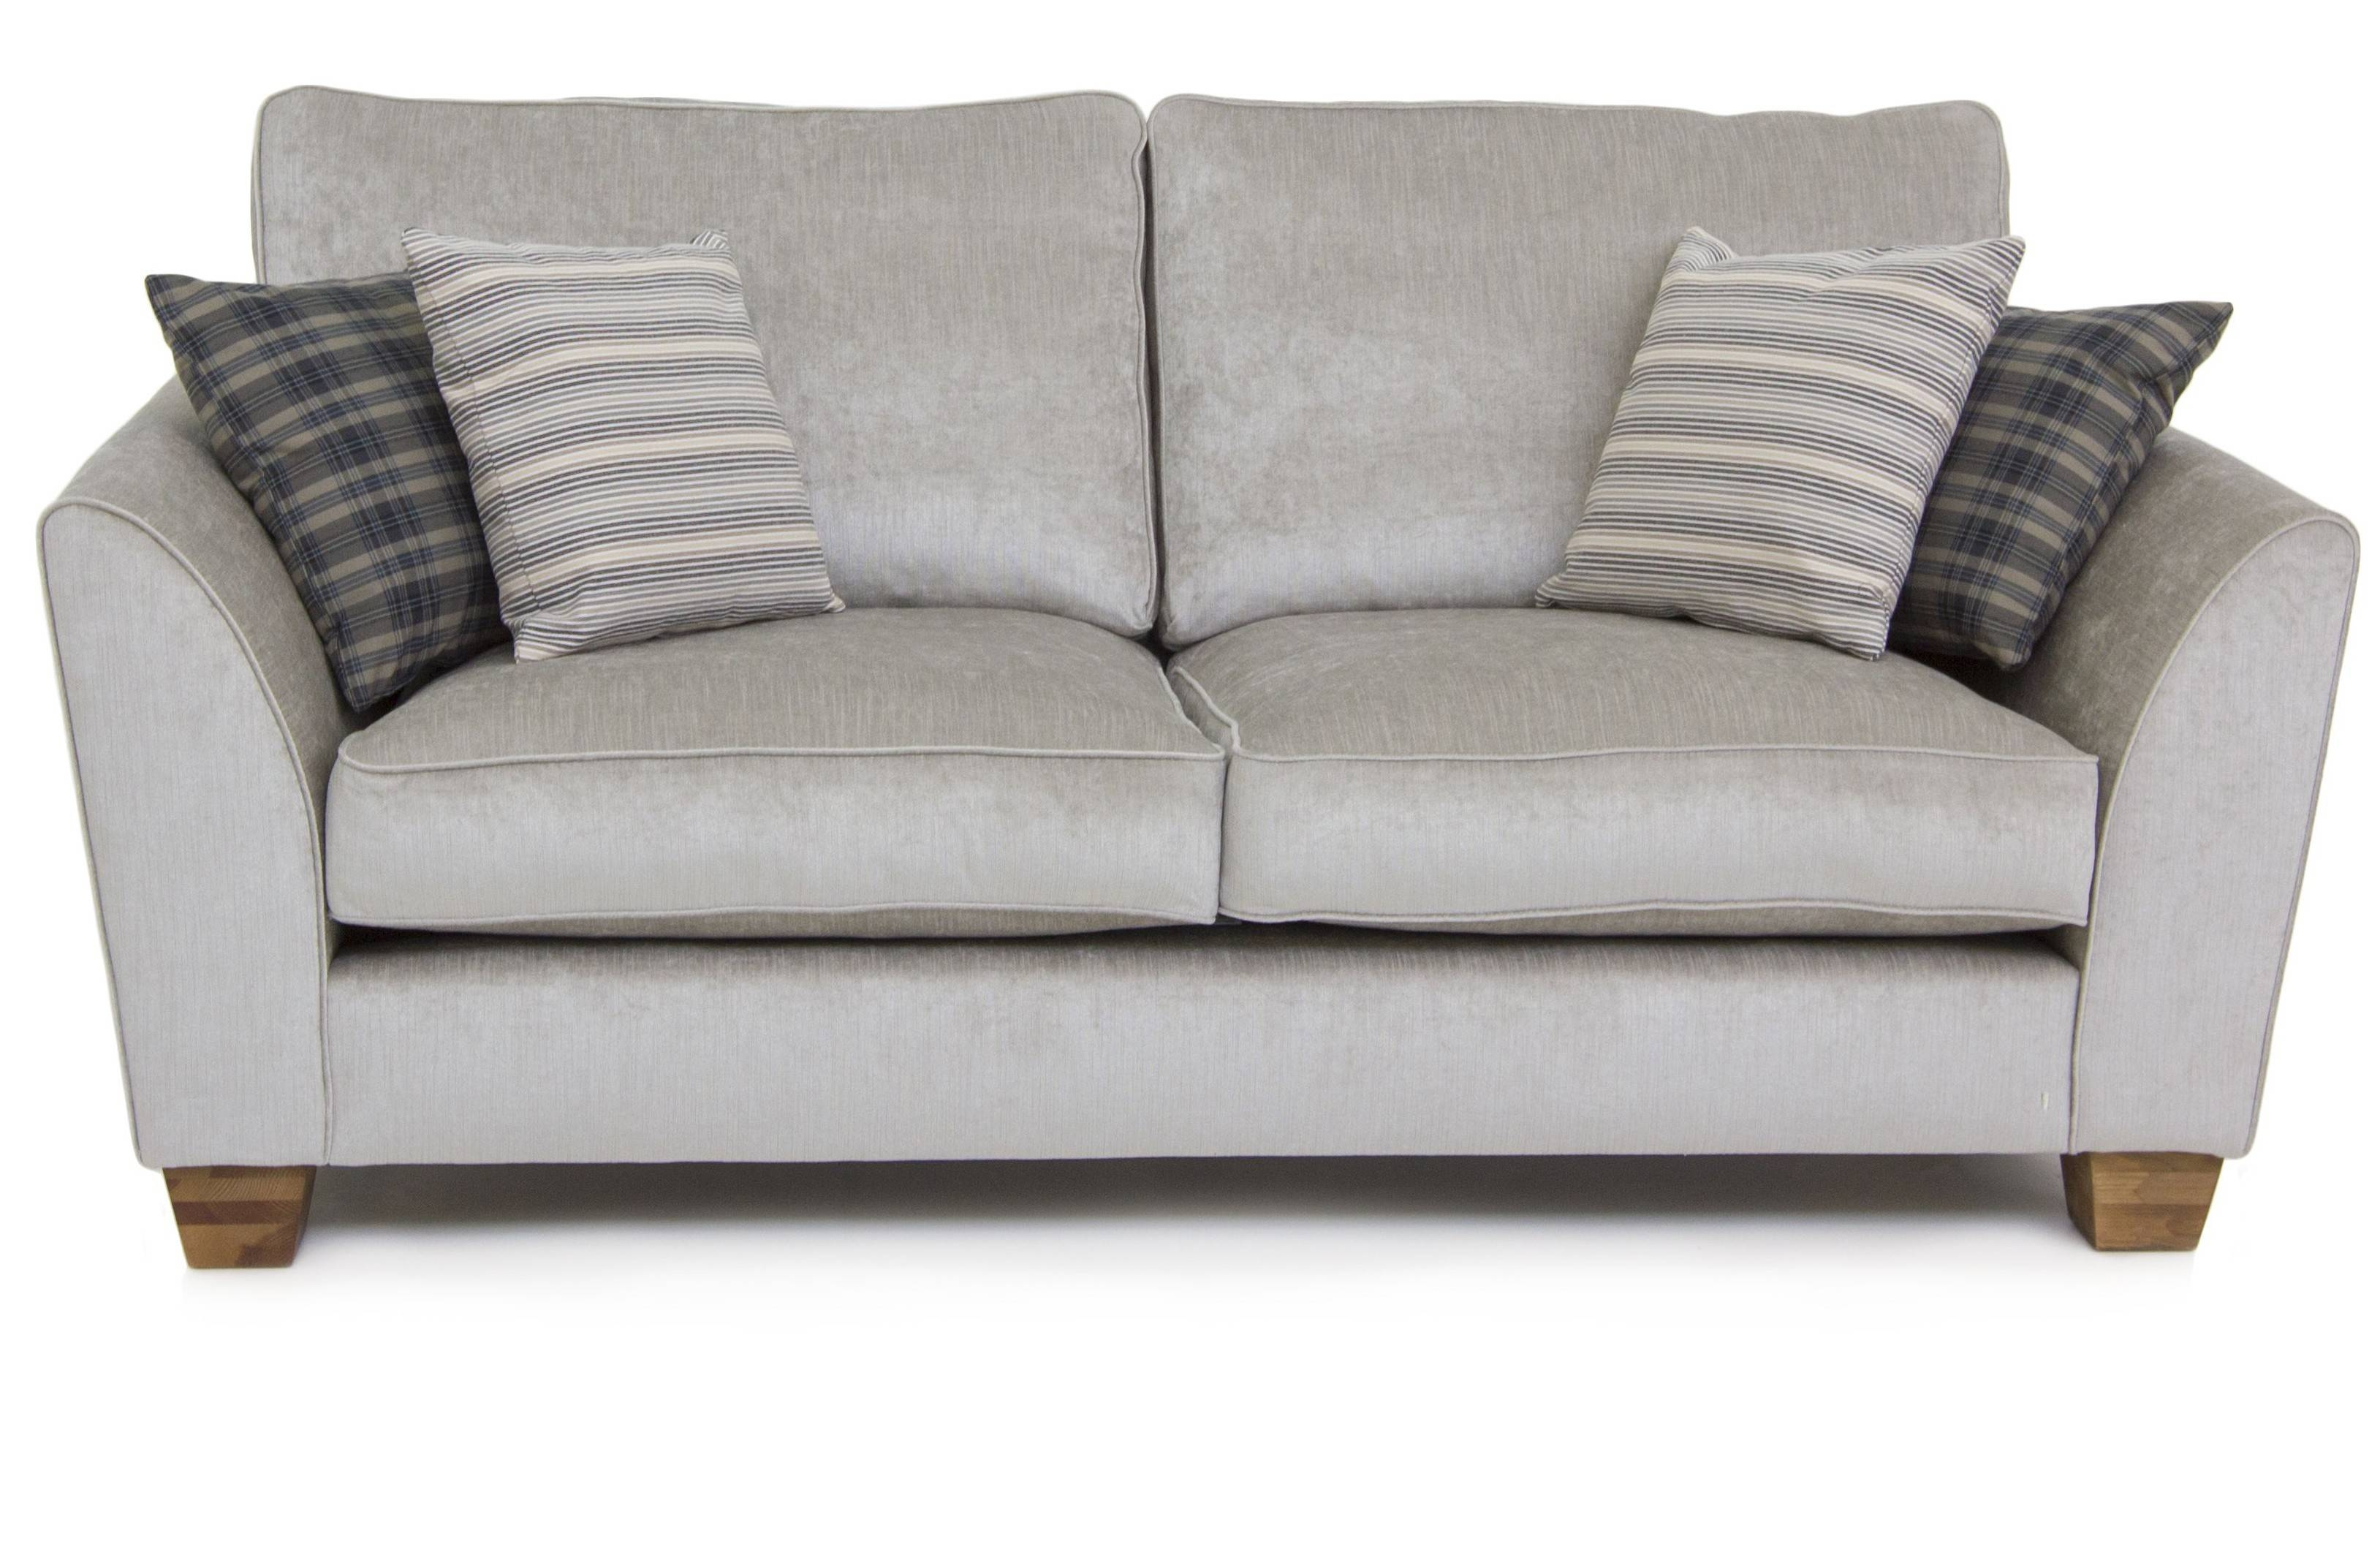 Small 2 Seater Sofa 81 With Small 2 Seater Sofa | Jinanhongyu with Small 2 Seater Sofas (Image 12 of 30)